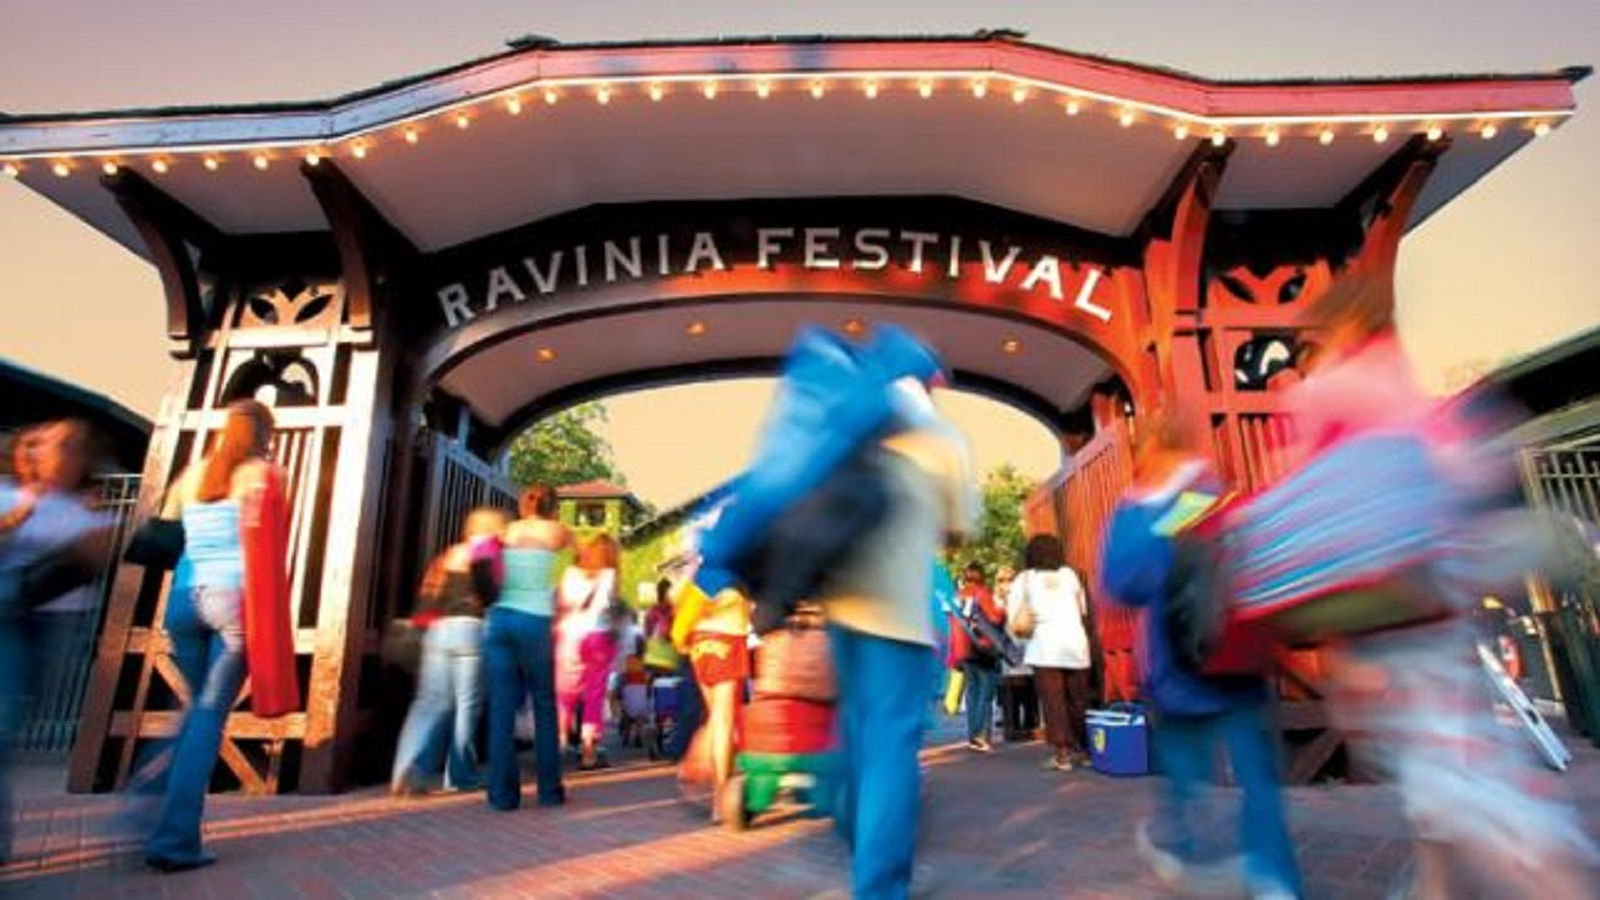 The Westin Chicago North Shore - Ravinia Festival